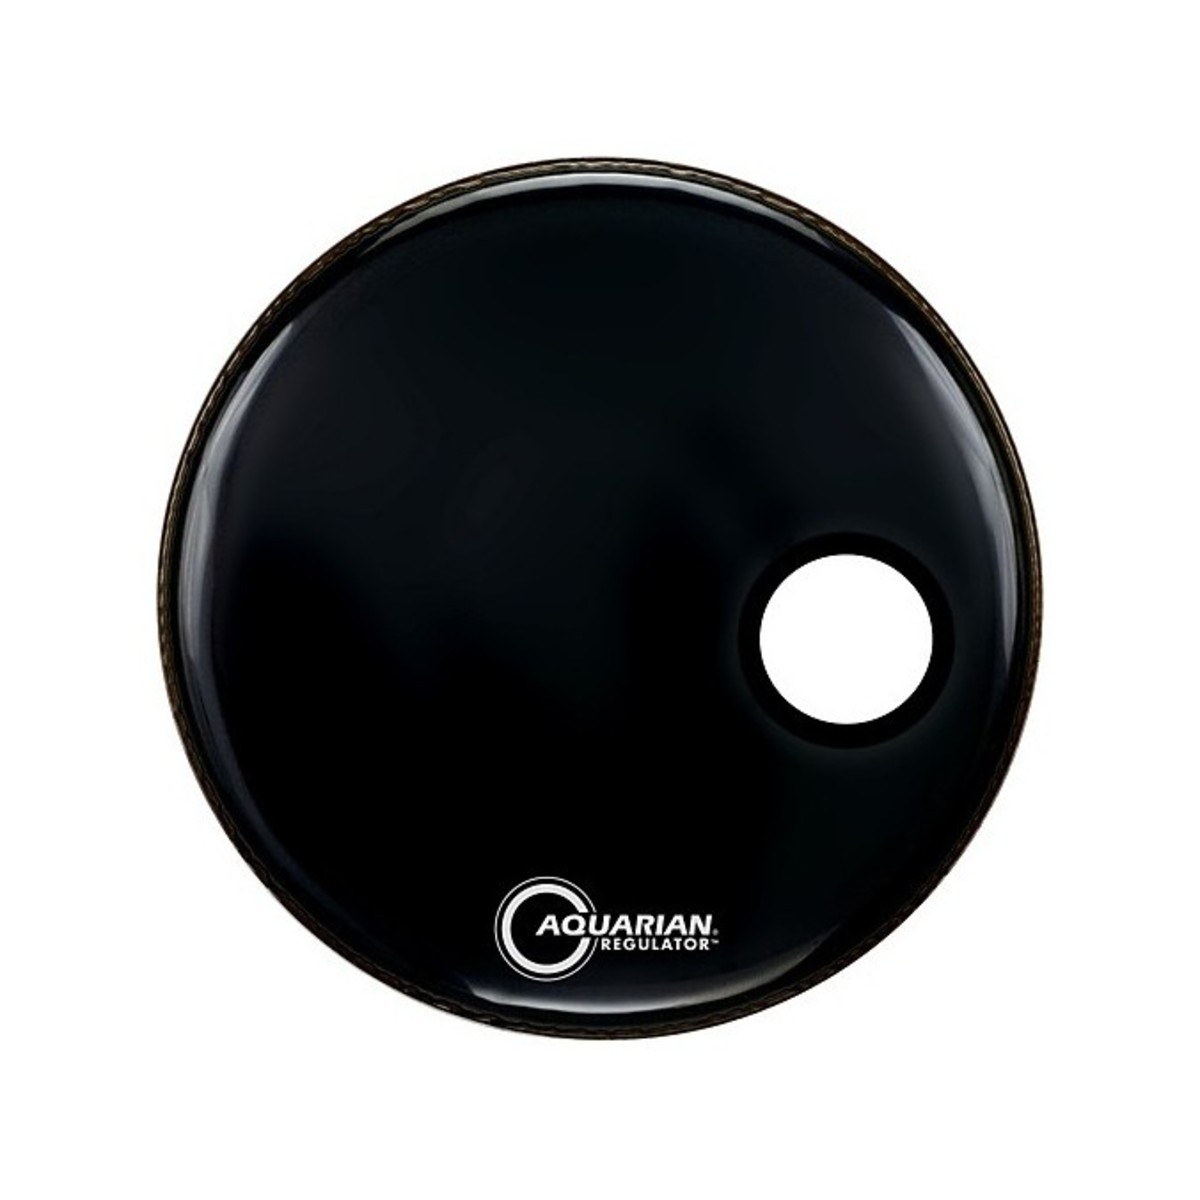 aquarian regulator 24 39 39 resonant bass drum head w hole black at gear4music. Black Bedroom Furniture Sets. Home Design Ideas